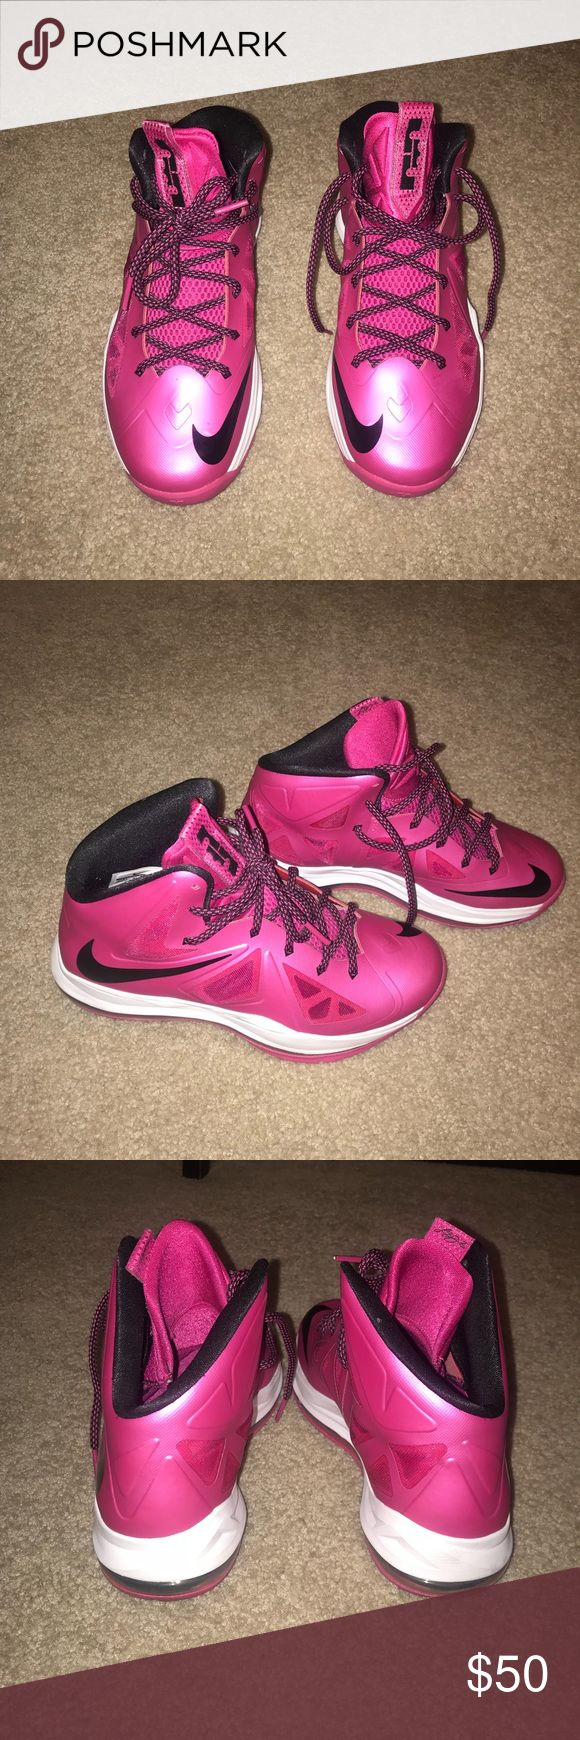 Nike-pink Lebron's. Size youth 6.5. These sneakers have hardly ever been worn. Great condition, and cute for a casual outfit or pop of color. Do not have original box. Nike Shoes Athletic Shoes